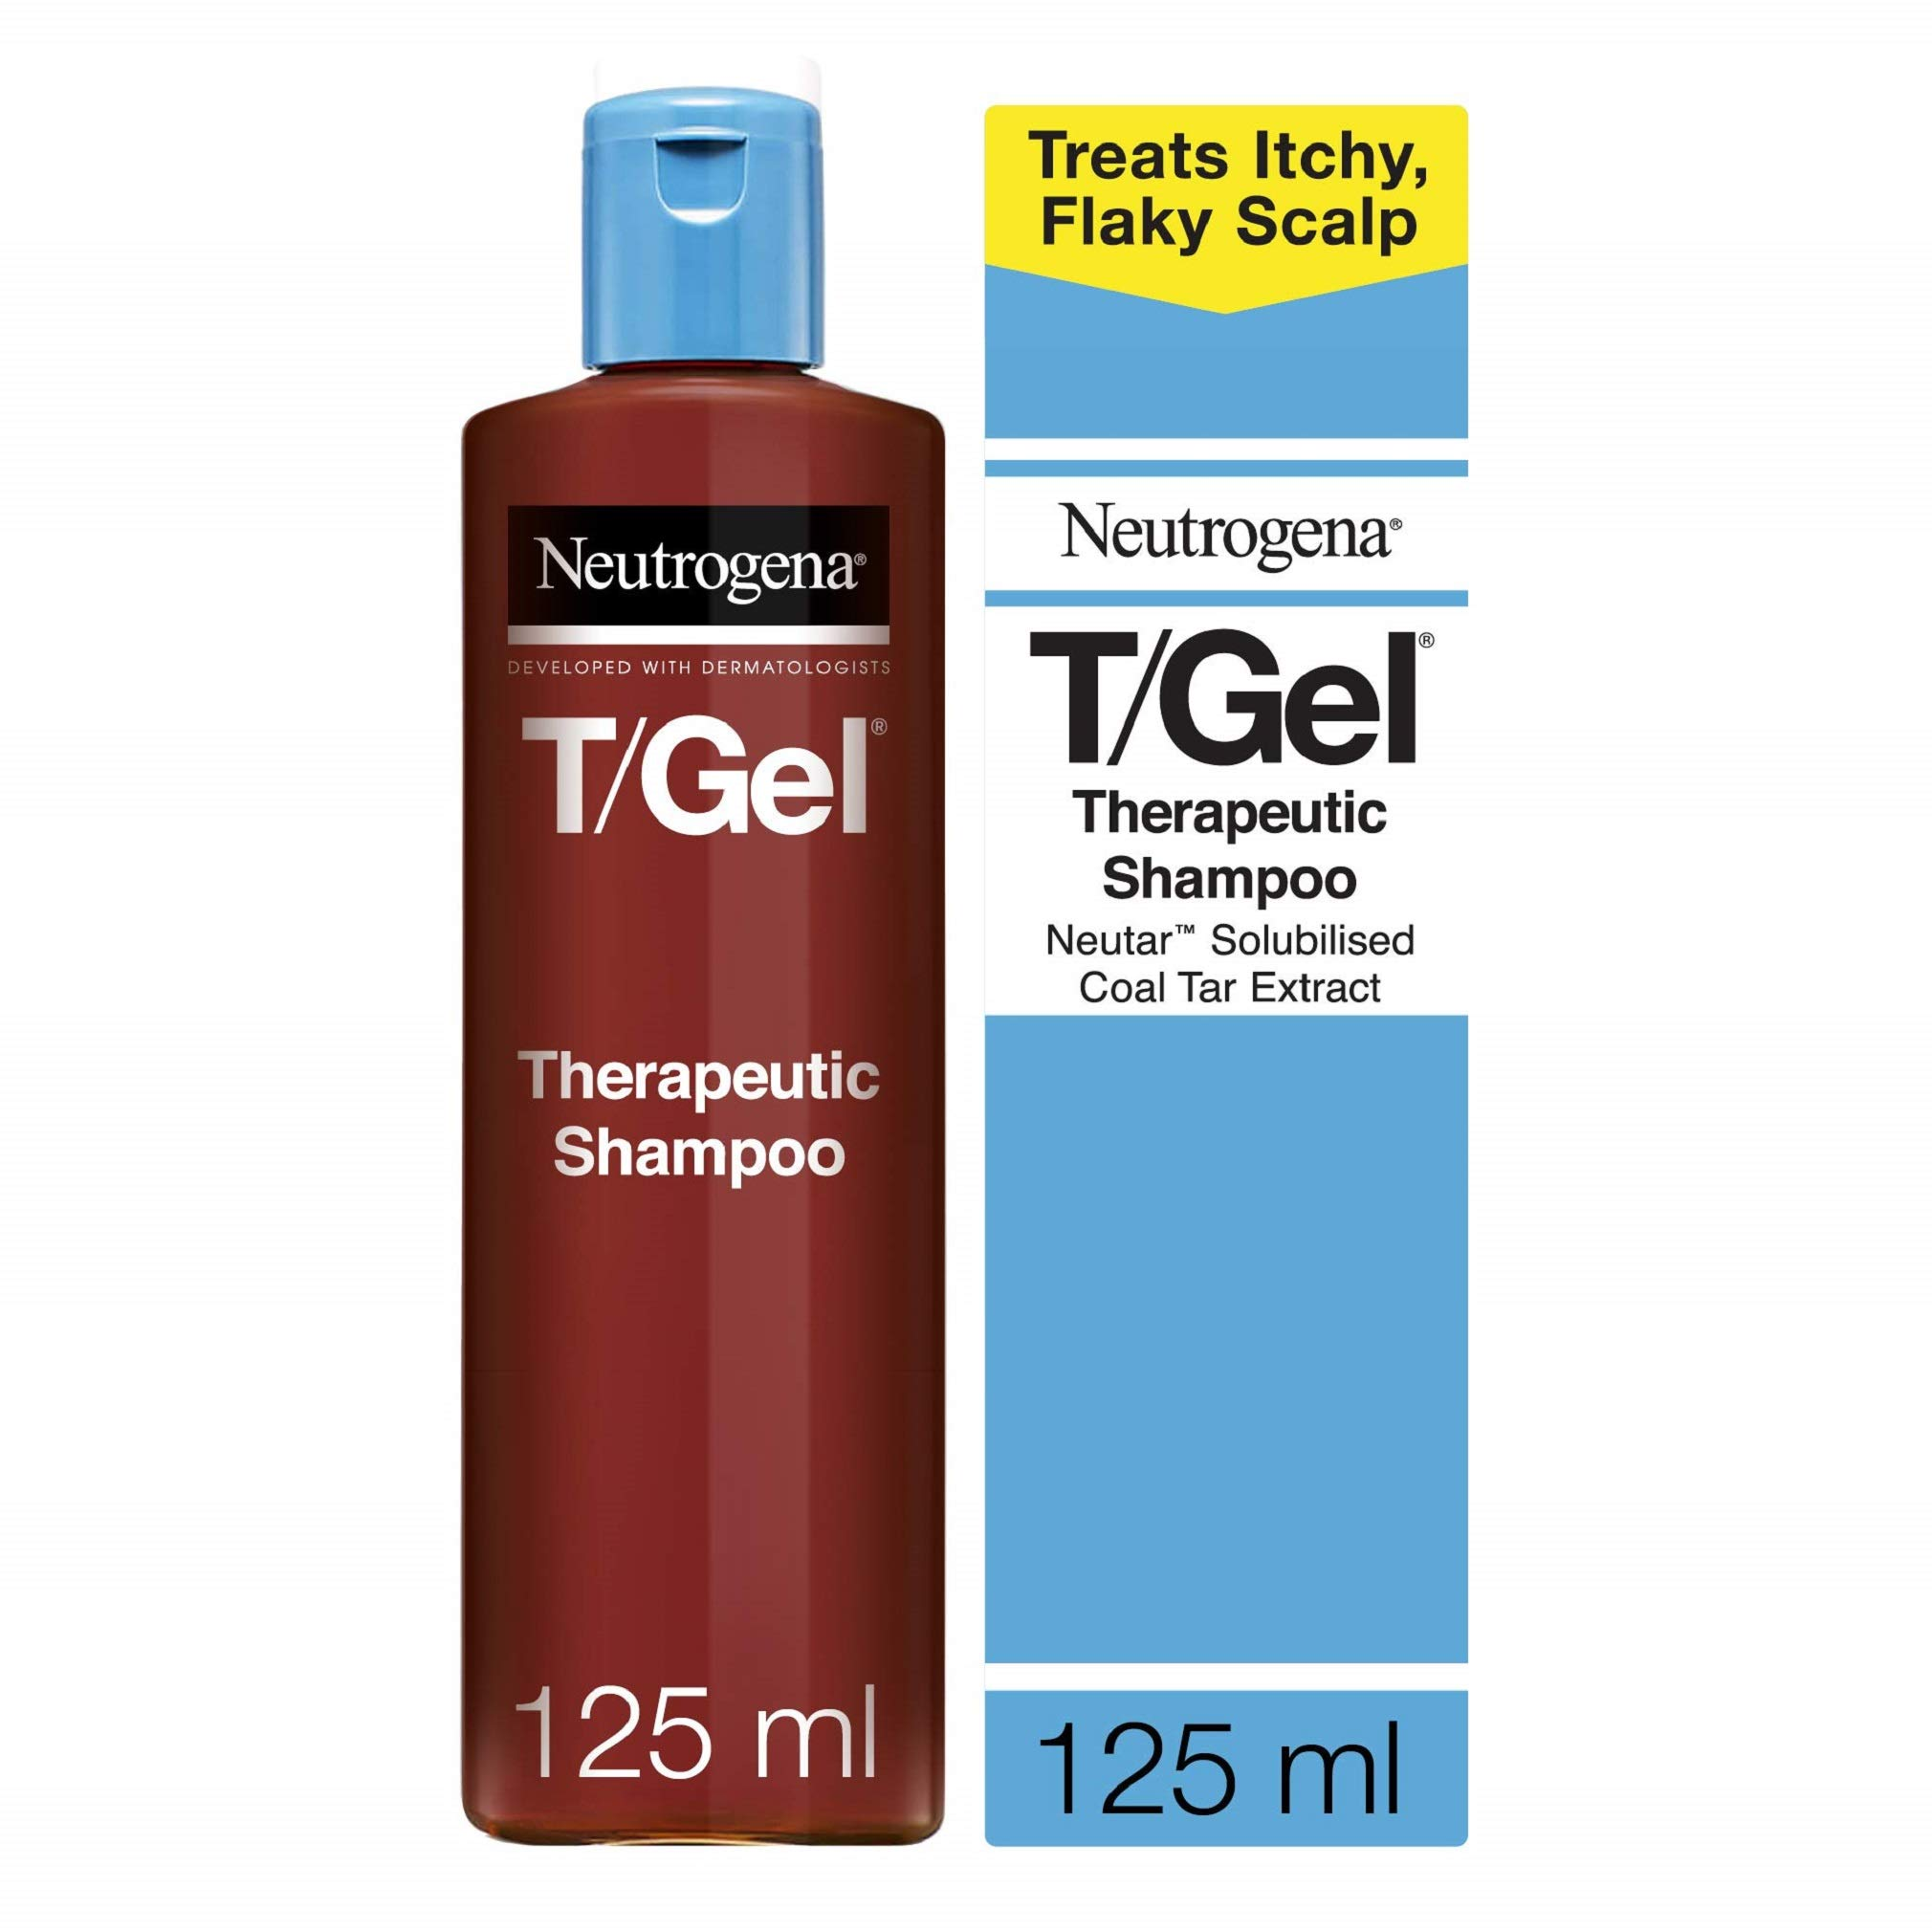 Neutrogena T/Gel Therapeutic Shampoo Treatment for Scalp Psoriasis, Itching Scalp and Dandruff 125ml